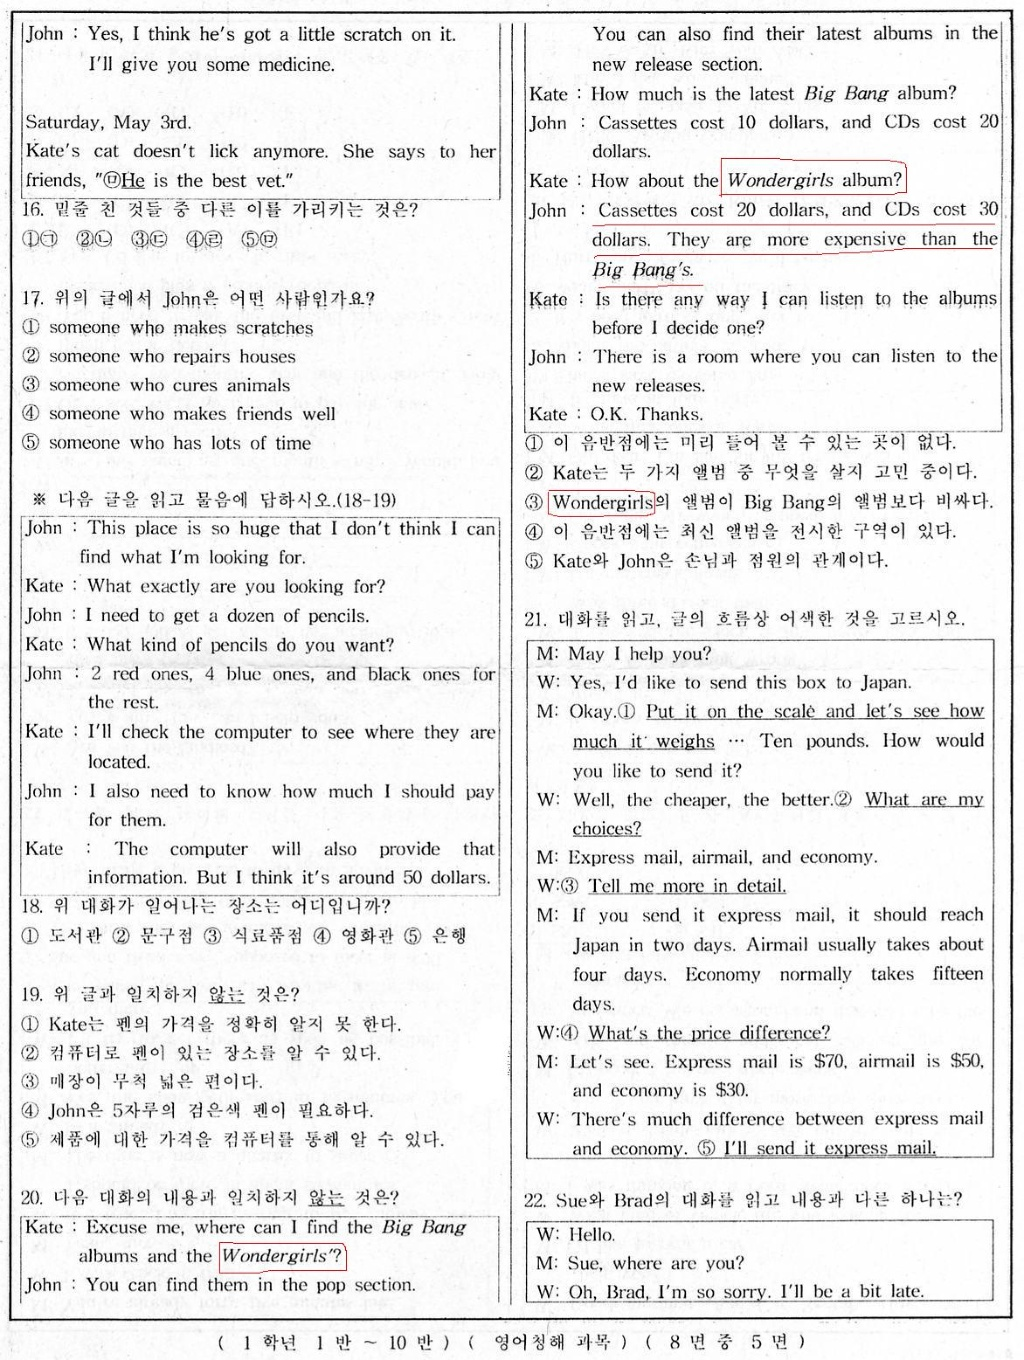 English Language Test Paper In Korea Using Wonder Girls